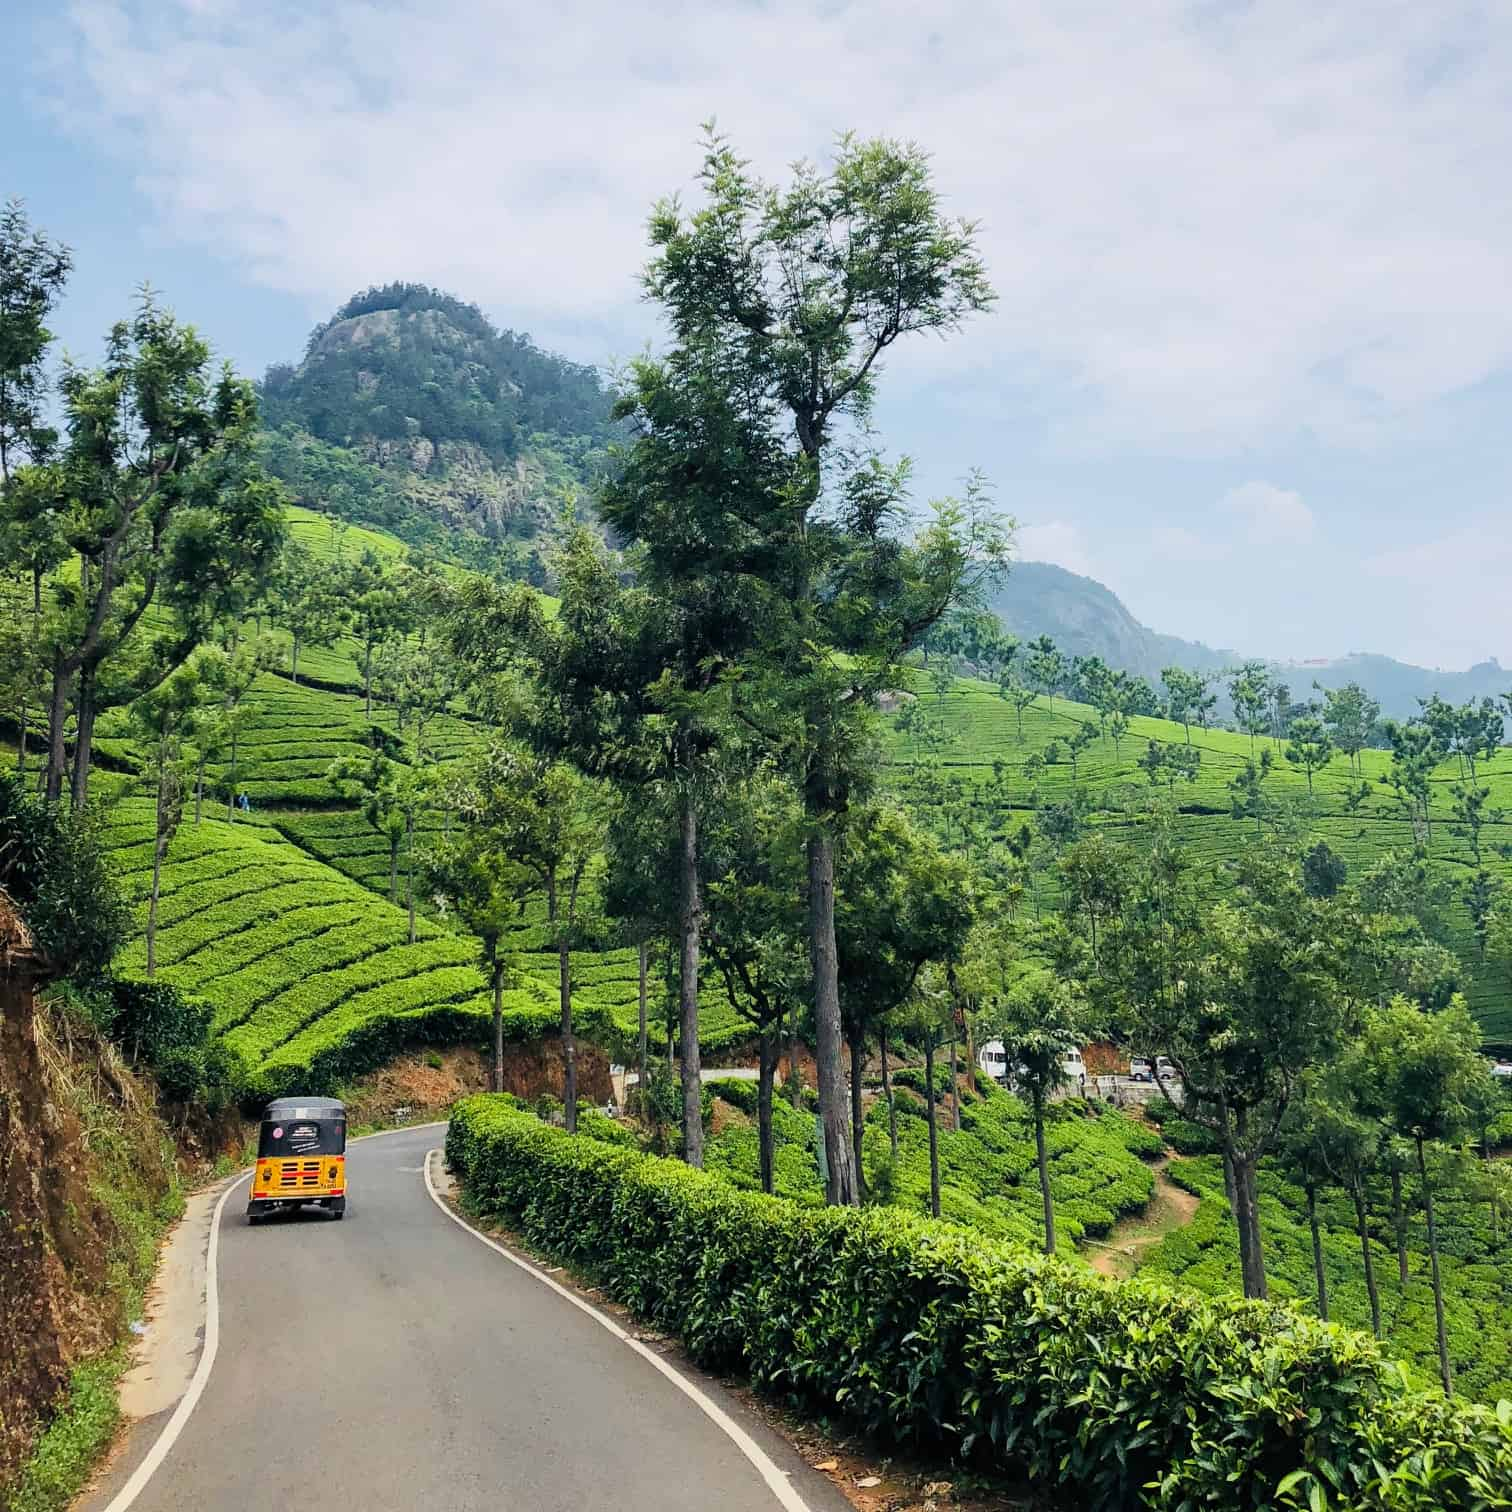 Hire a car and driver in Kotagiri